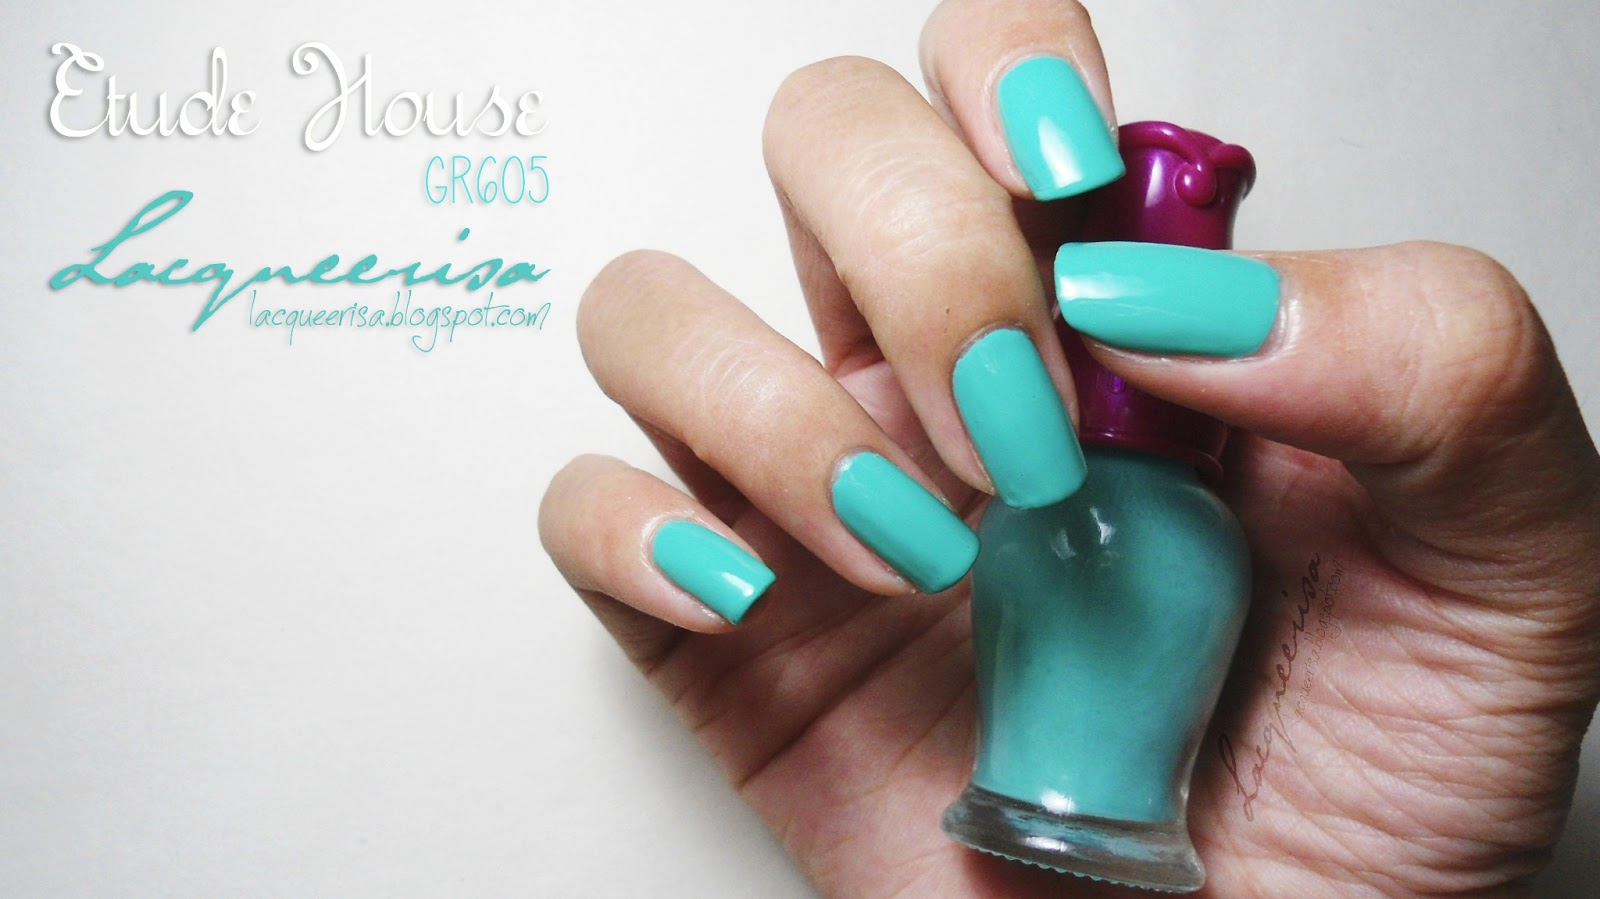 Lacqueerisa: Etude House GR605